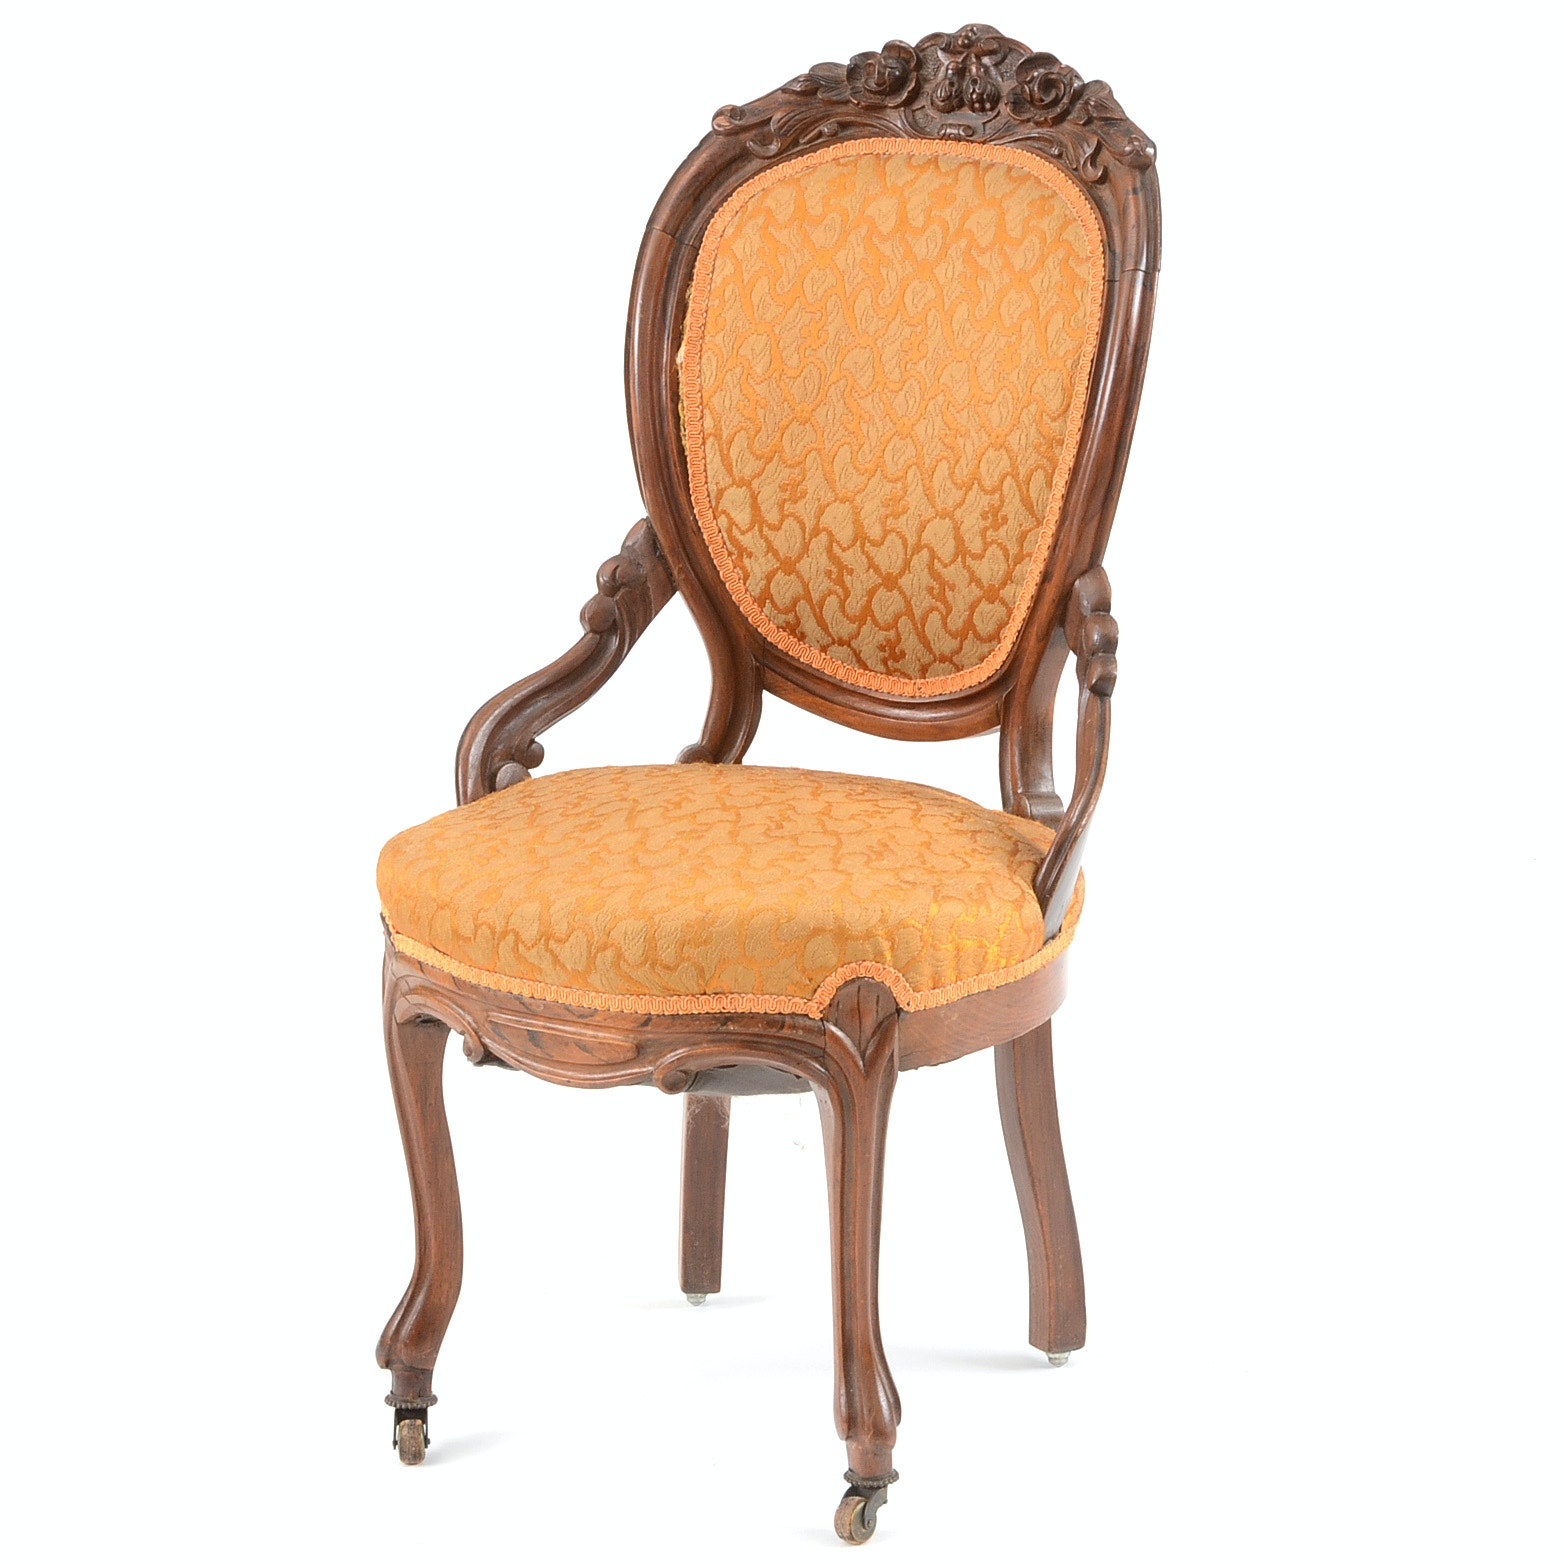 Victorian Carved Rosewood Parlor Chair